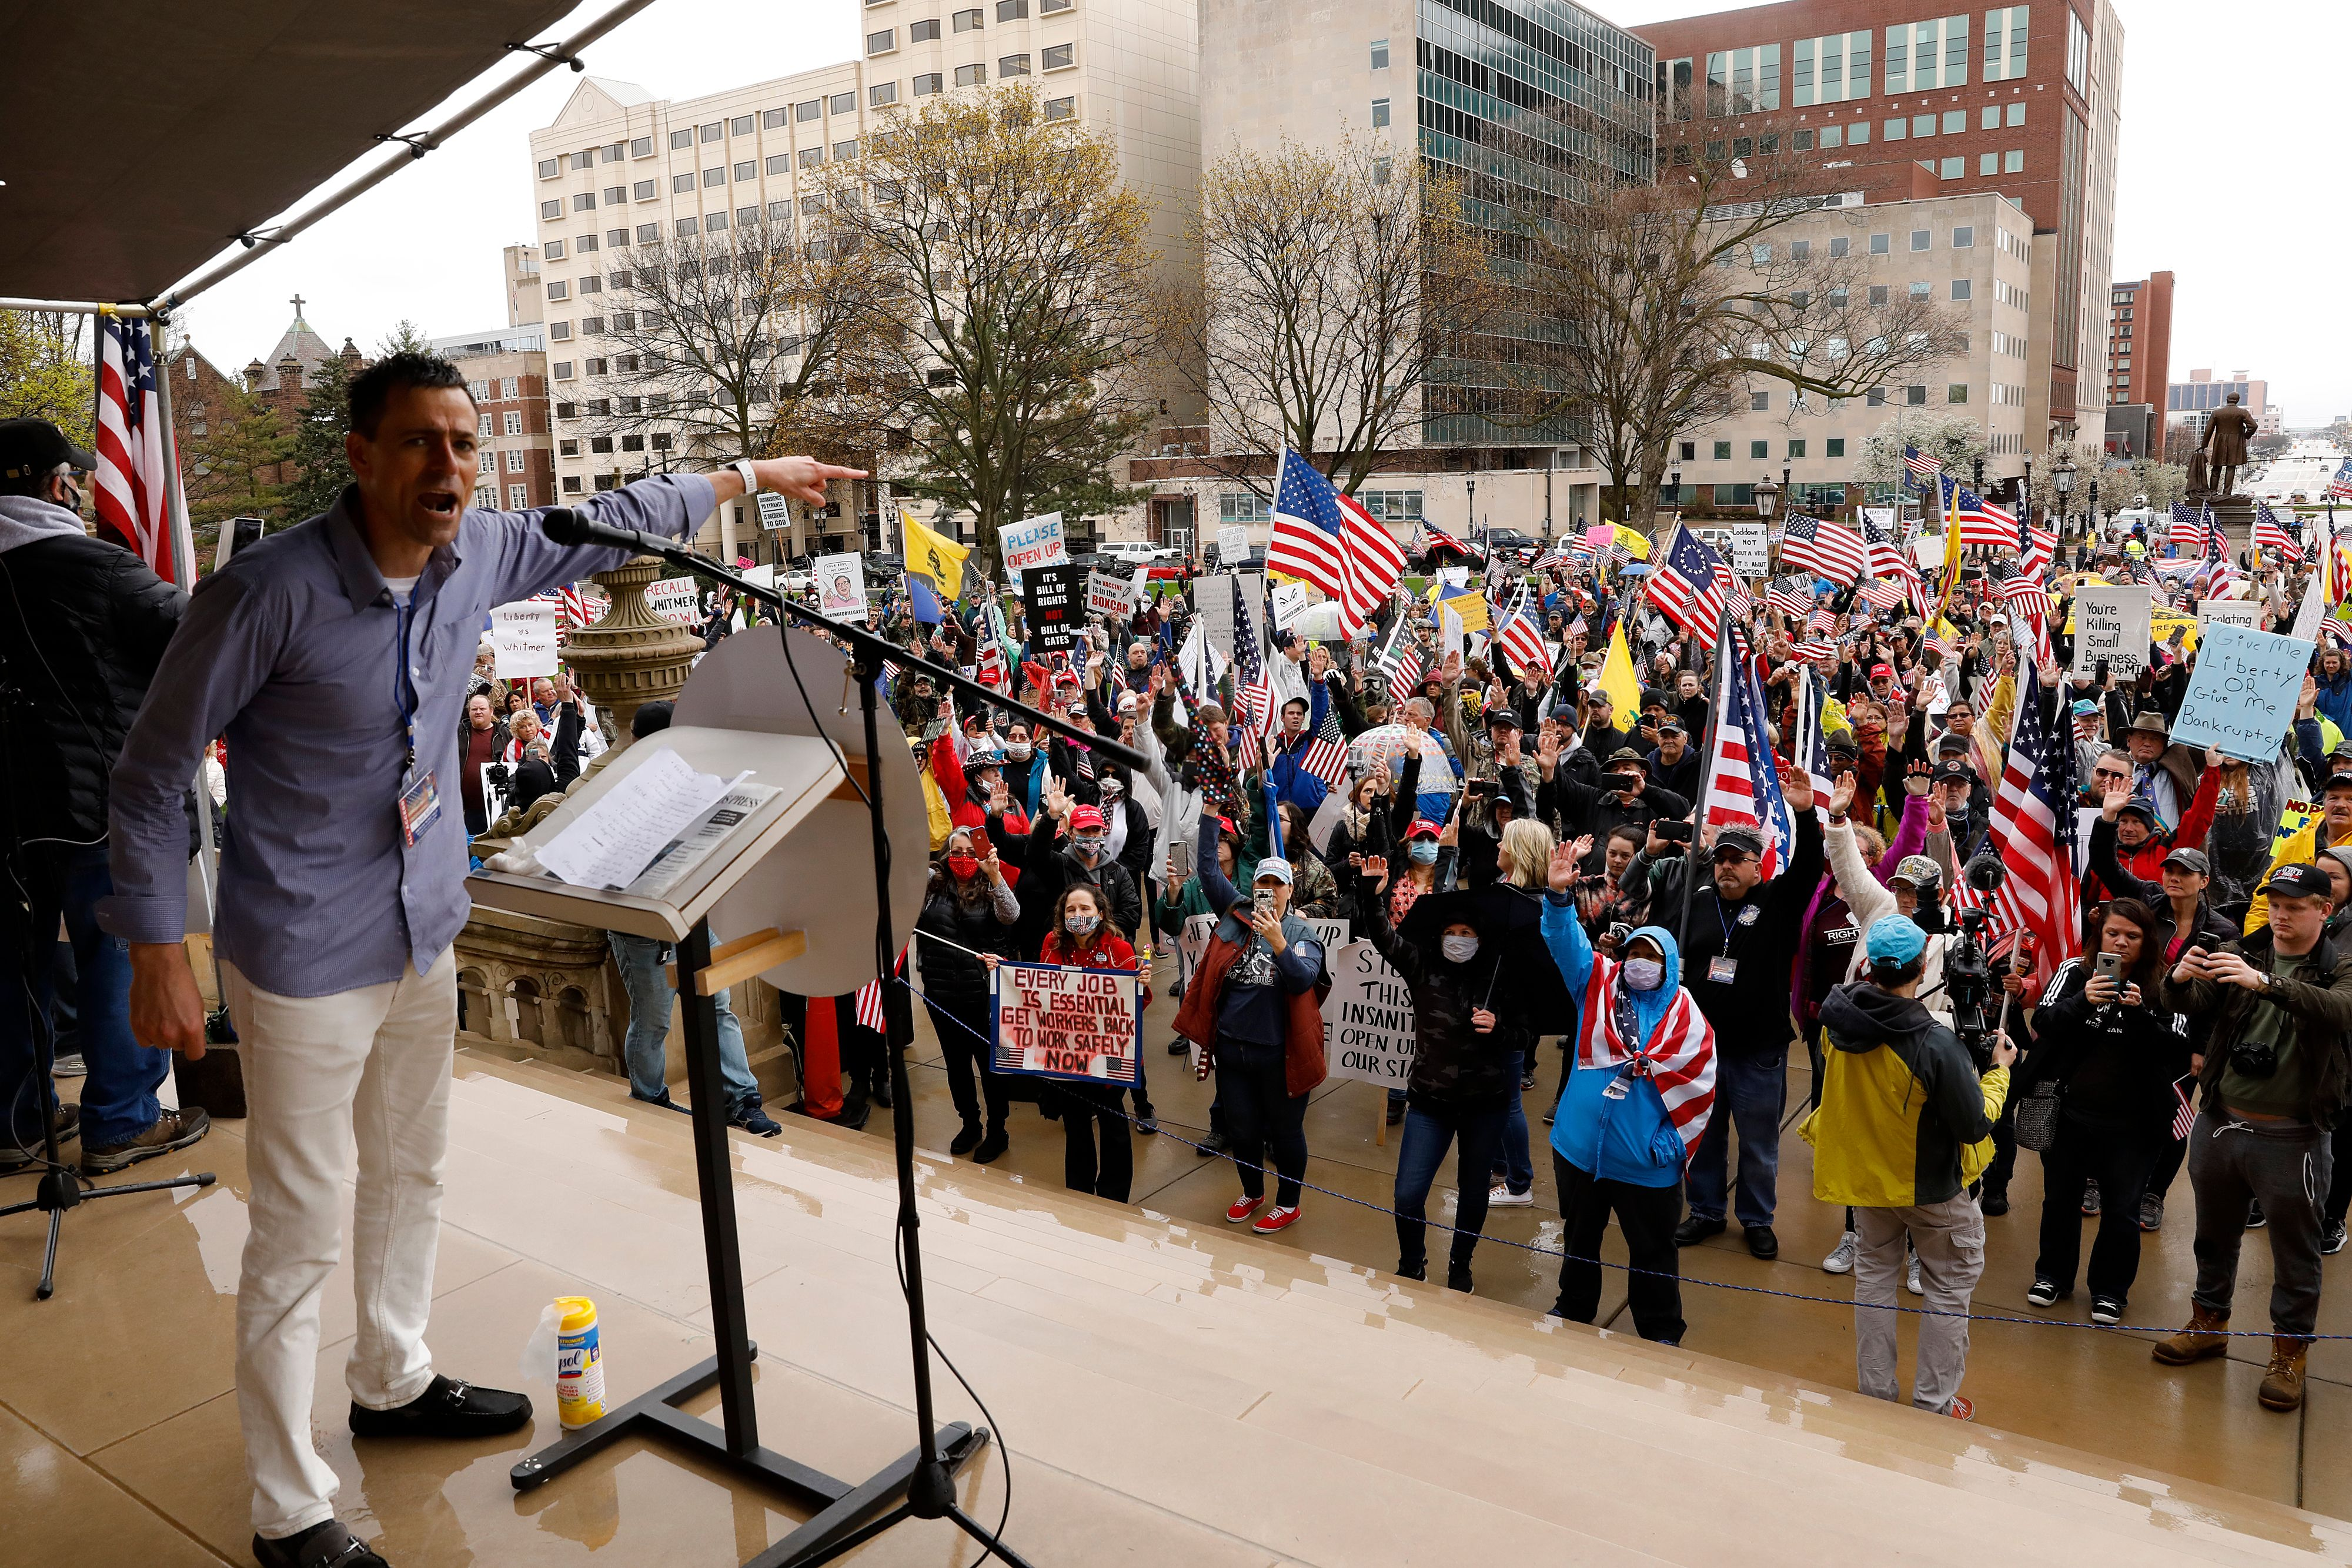 Ryan Kelley, a protest organizer, for the American Patriot Rally organized by the Michigan United for Liberty for the reopening of businesses stands on the steps of the Michigan State Capitol in Lansing, Michigan on April 30, 2020. (Photo by JEFF KOWALSKY/AFP via Getty Images)